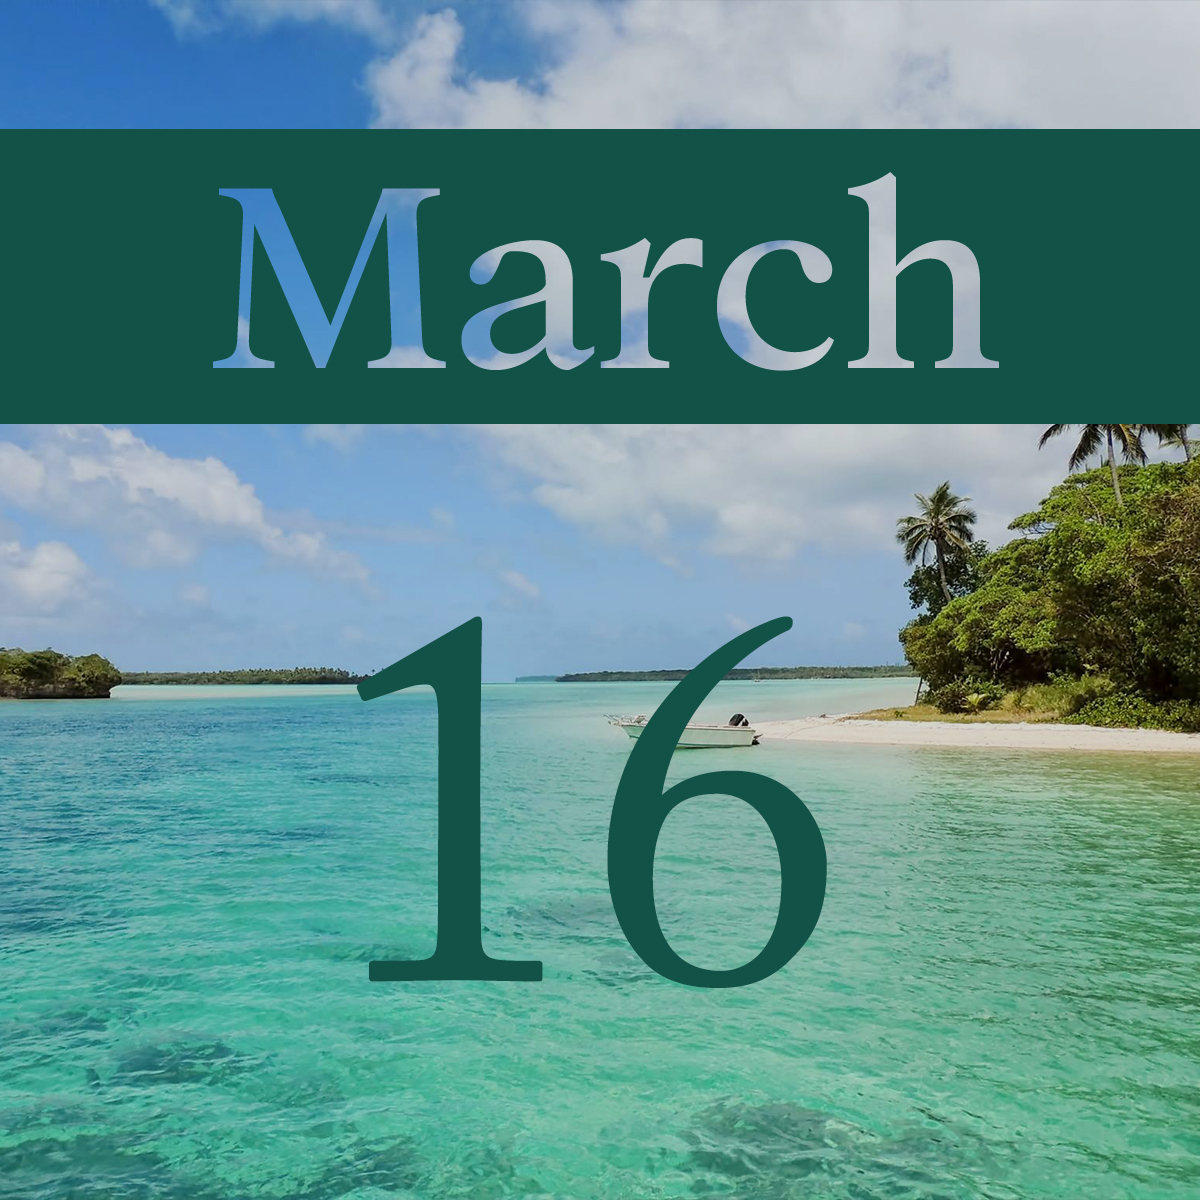 Monday, March 16th